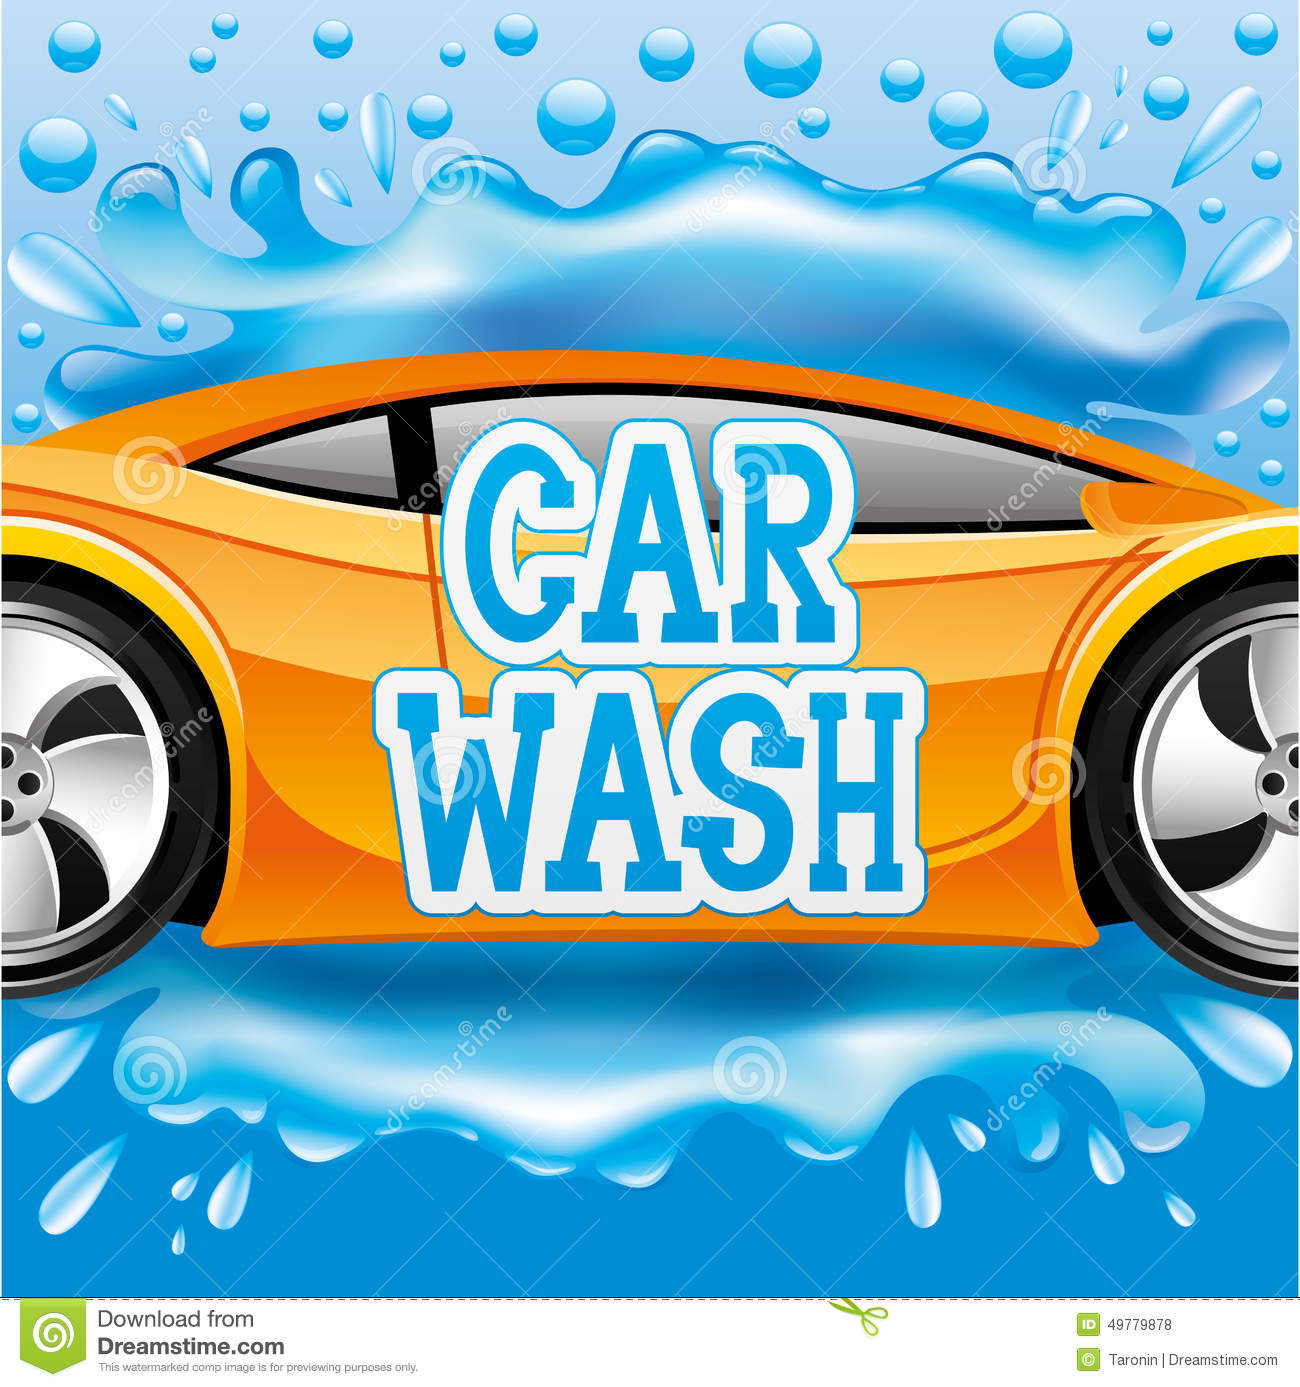 Car Wash Stock Vector Illustration Of Automotive Image 49779878